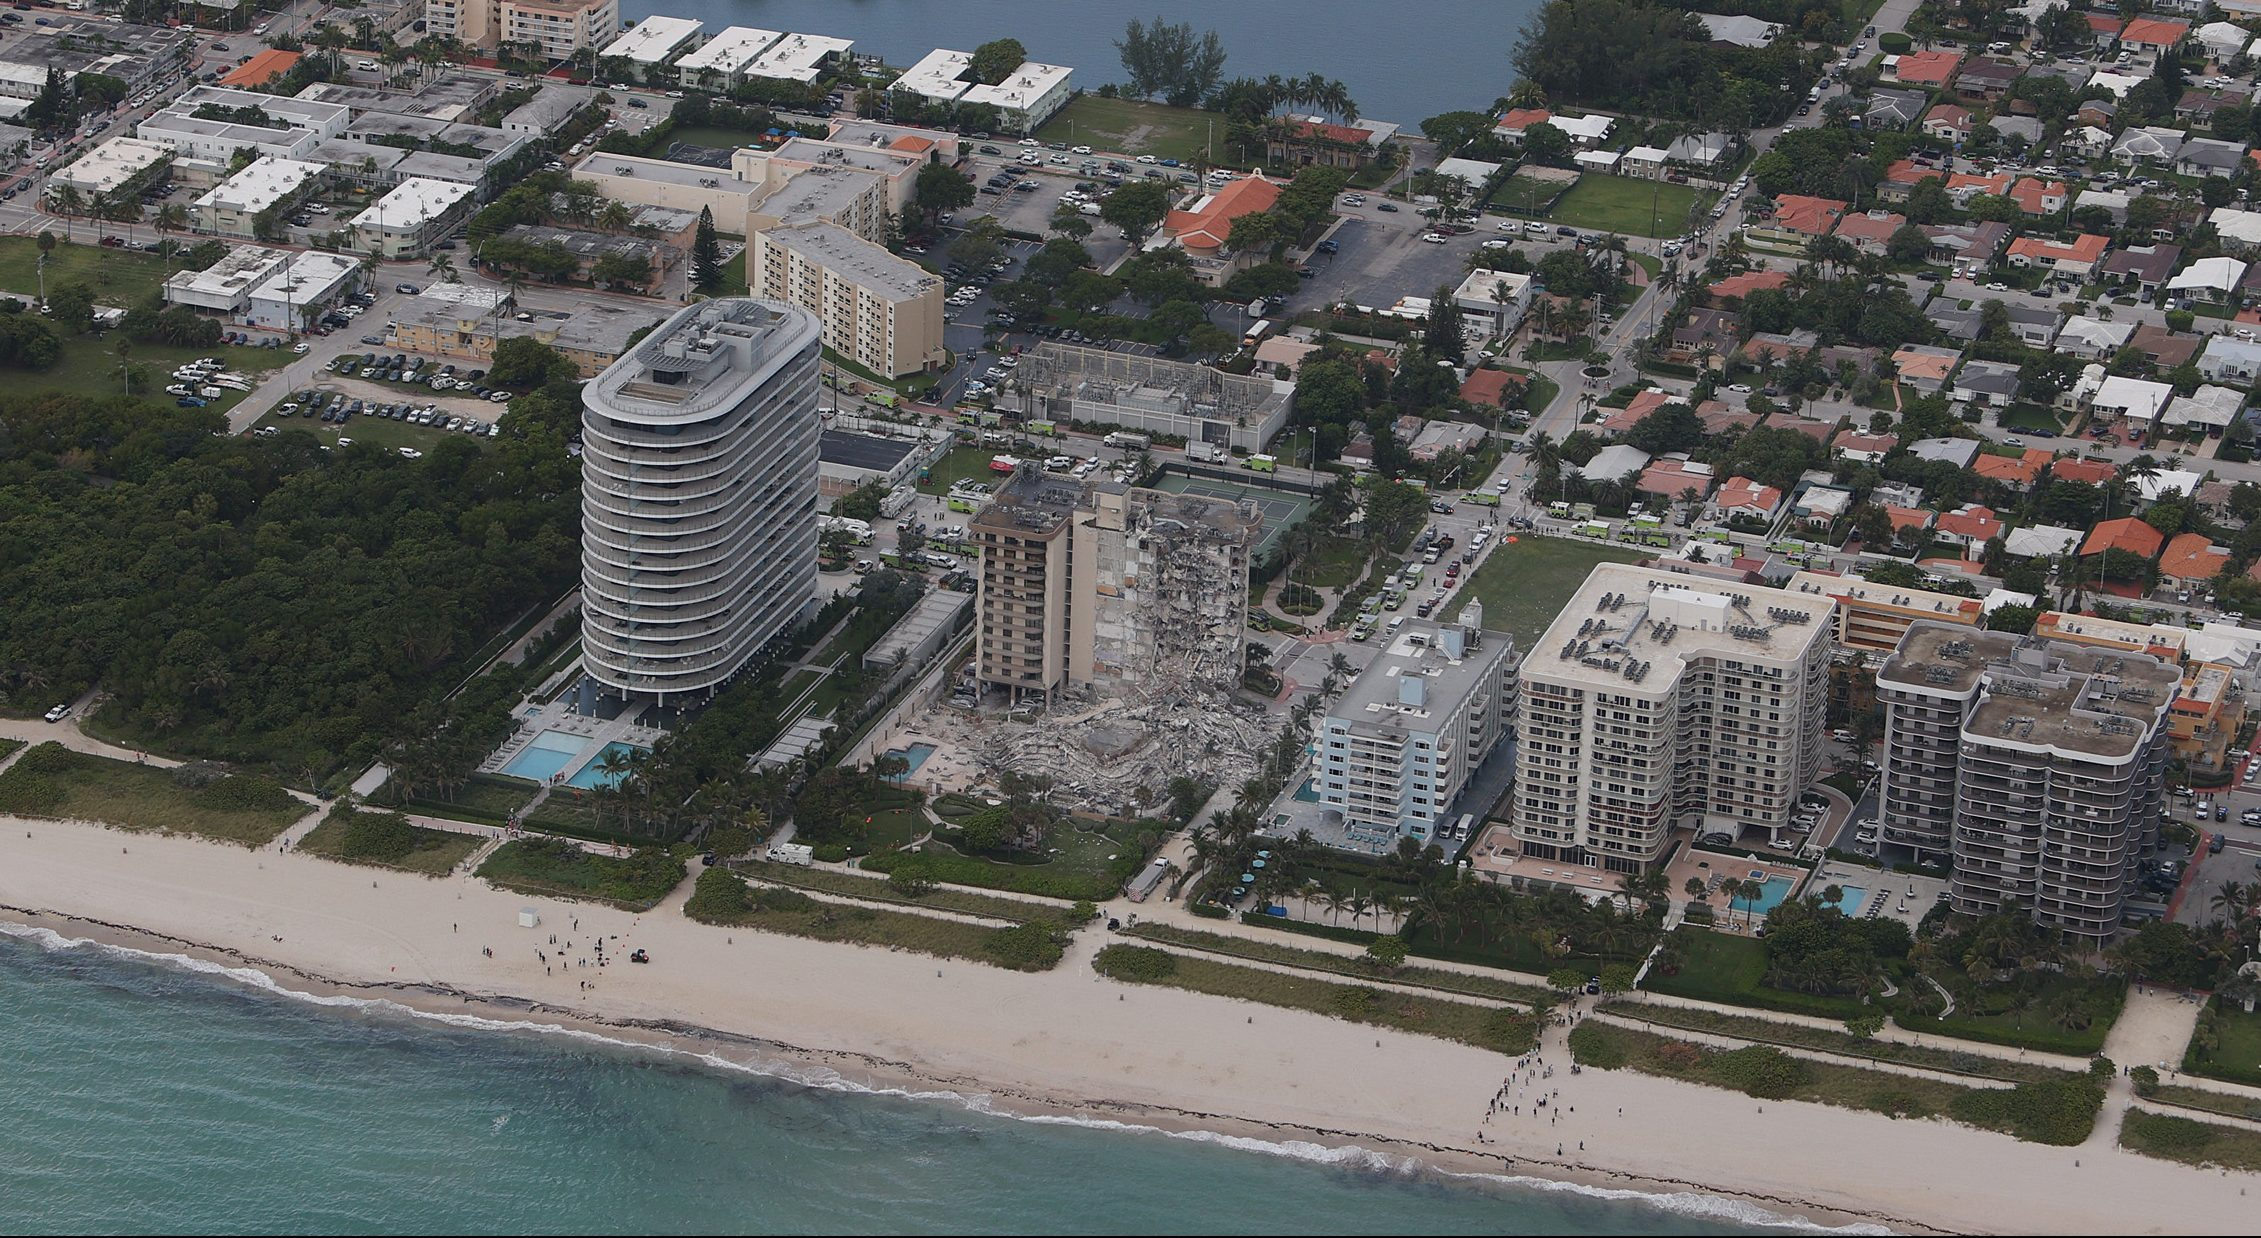 A portion of a 12-story condo tower is seen crumbled to the ground after a partial collapse of the building in Surfside, Florida, on June 24, 2021. (Joe Raedle / Getty Images)